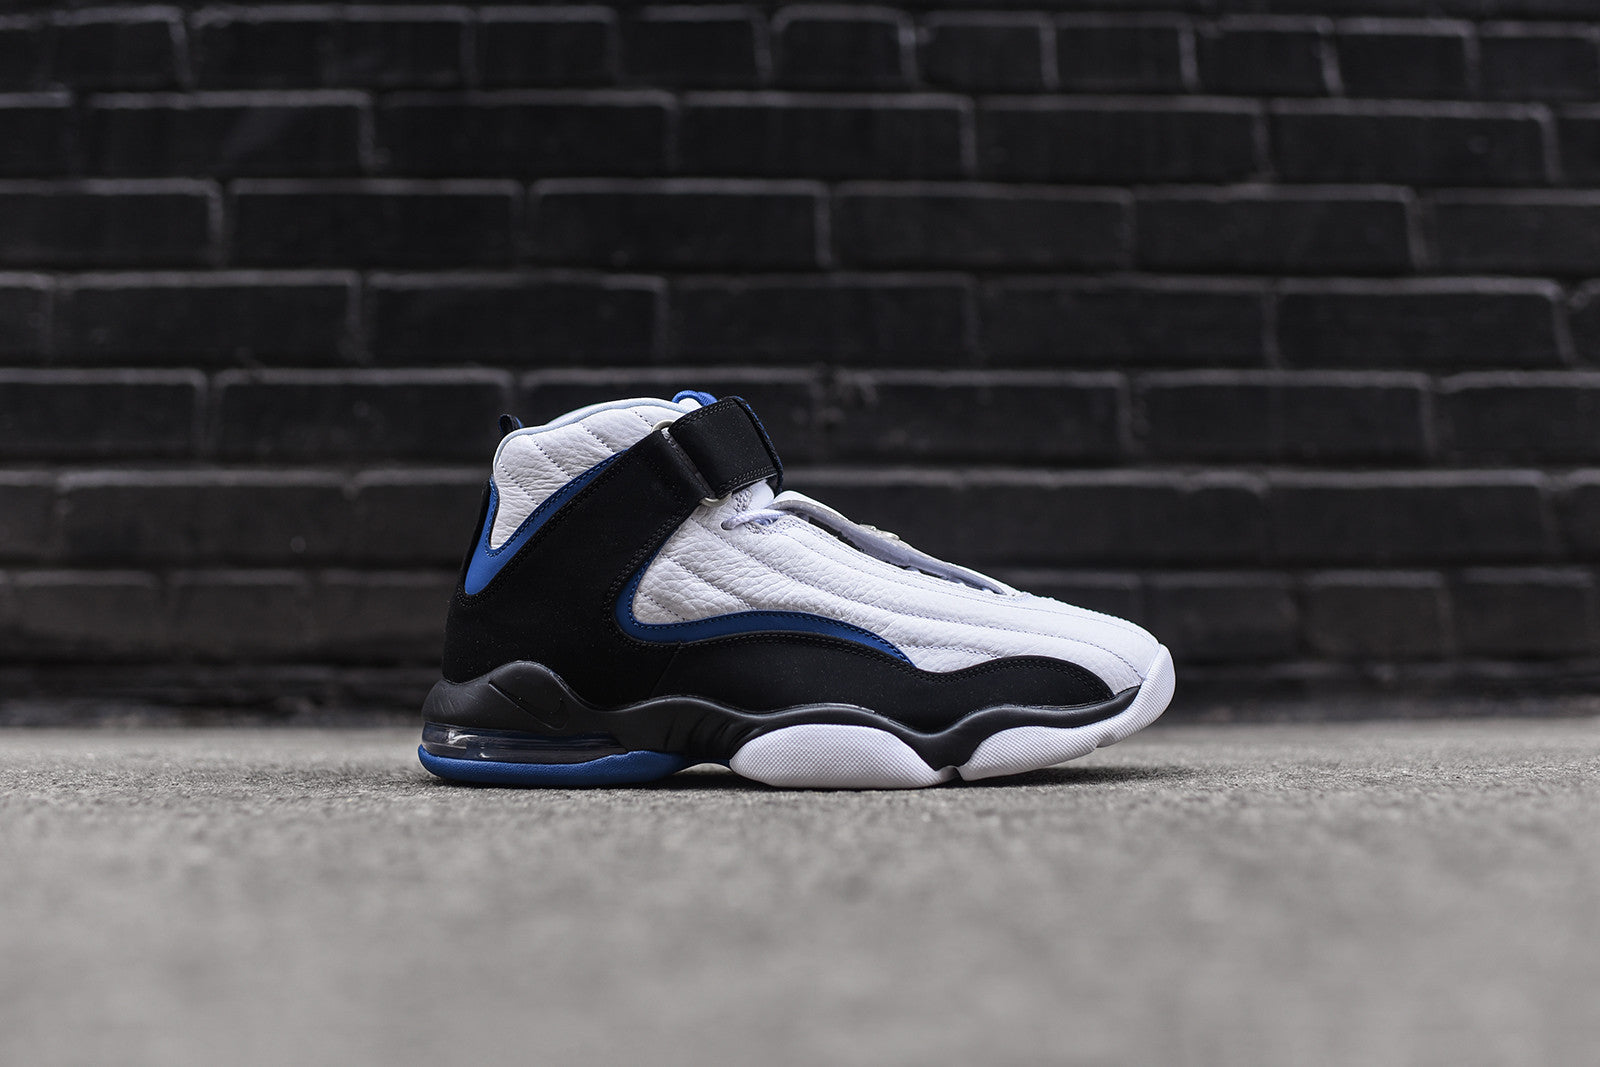 Nike Air Penny IV - White / Black